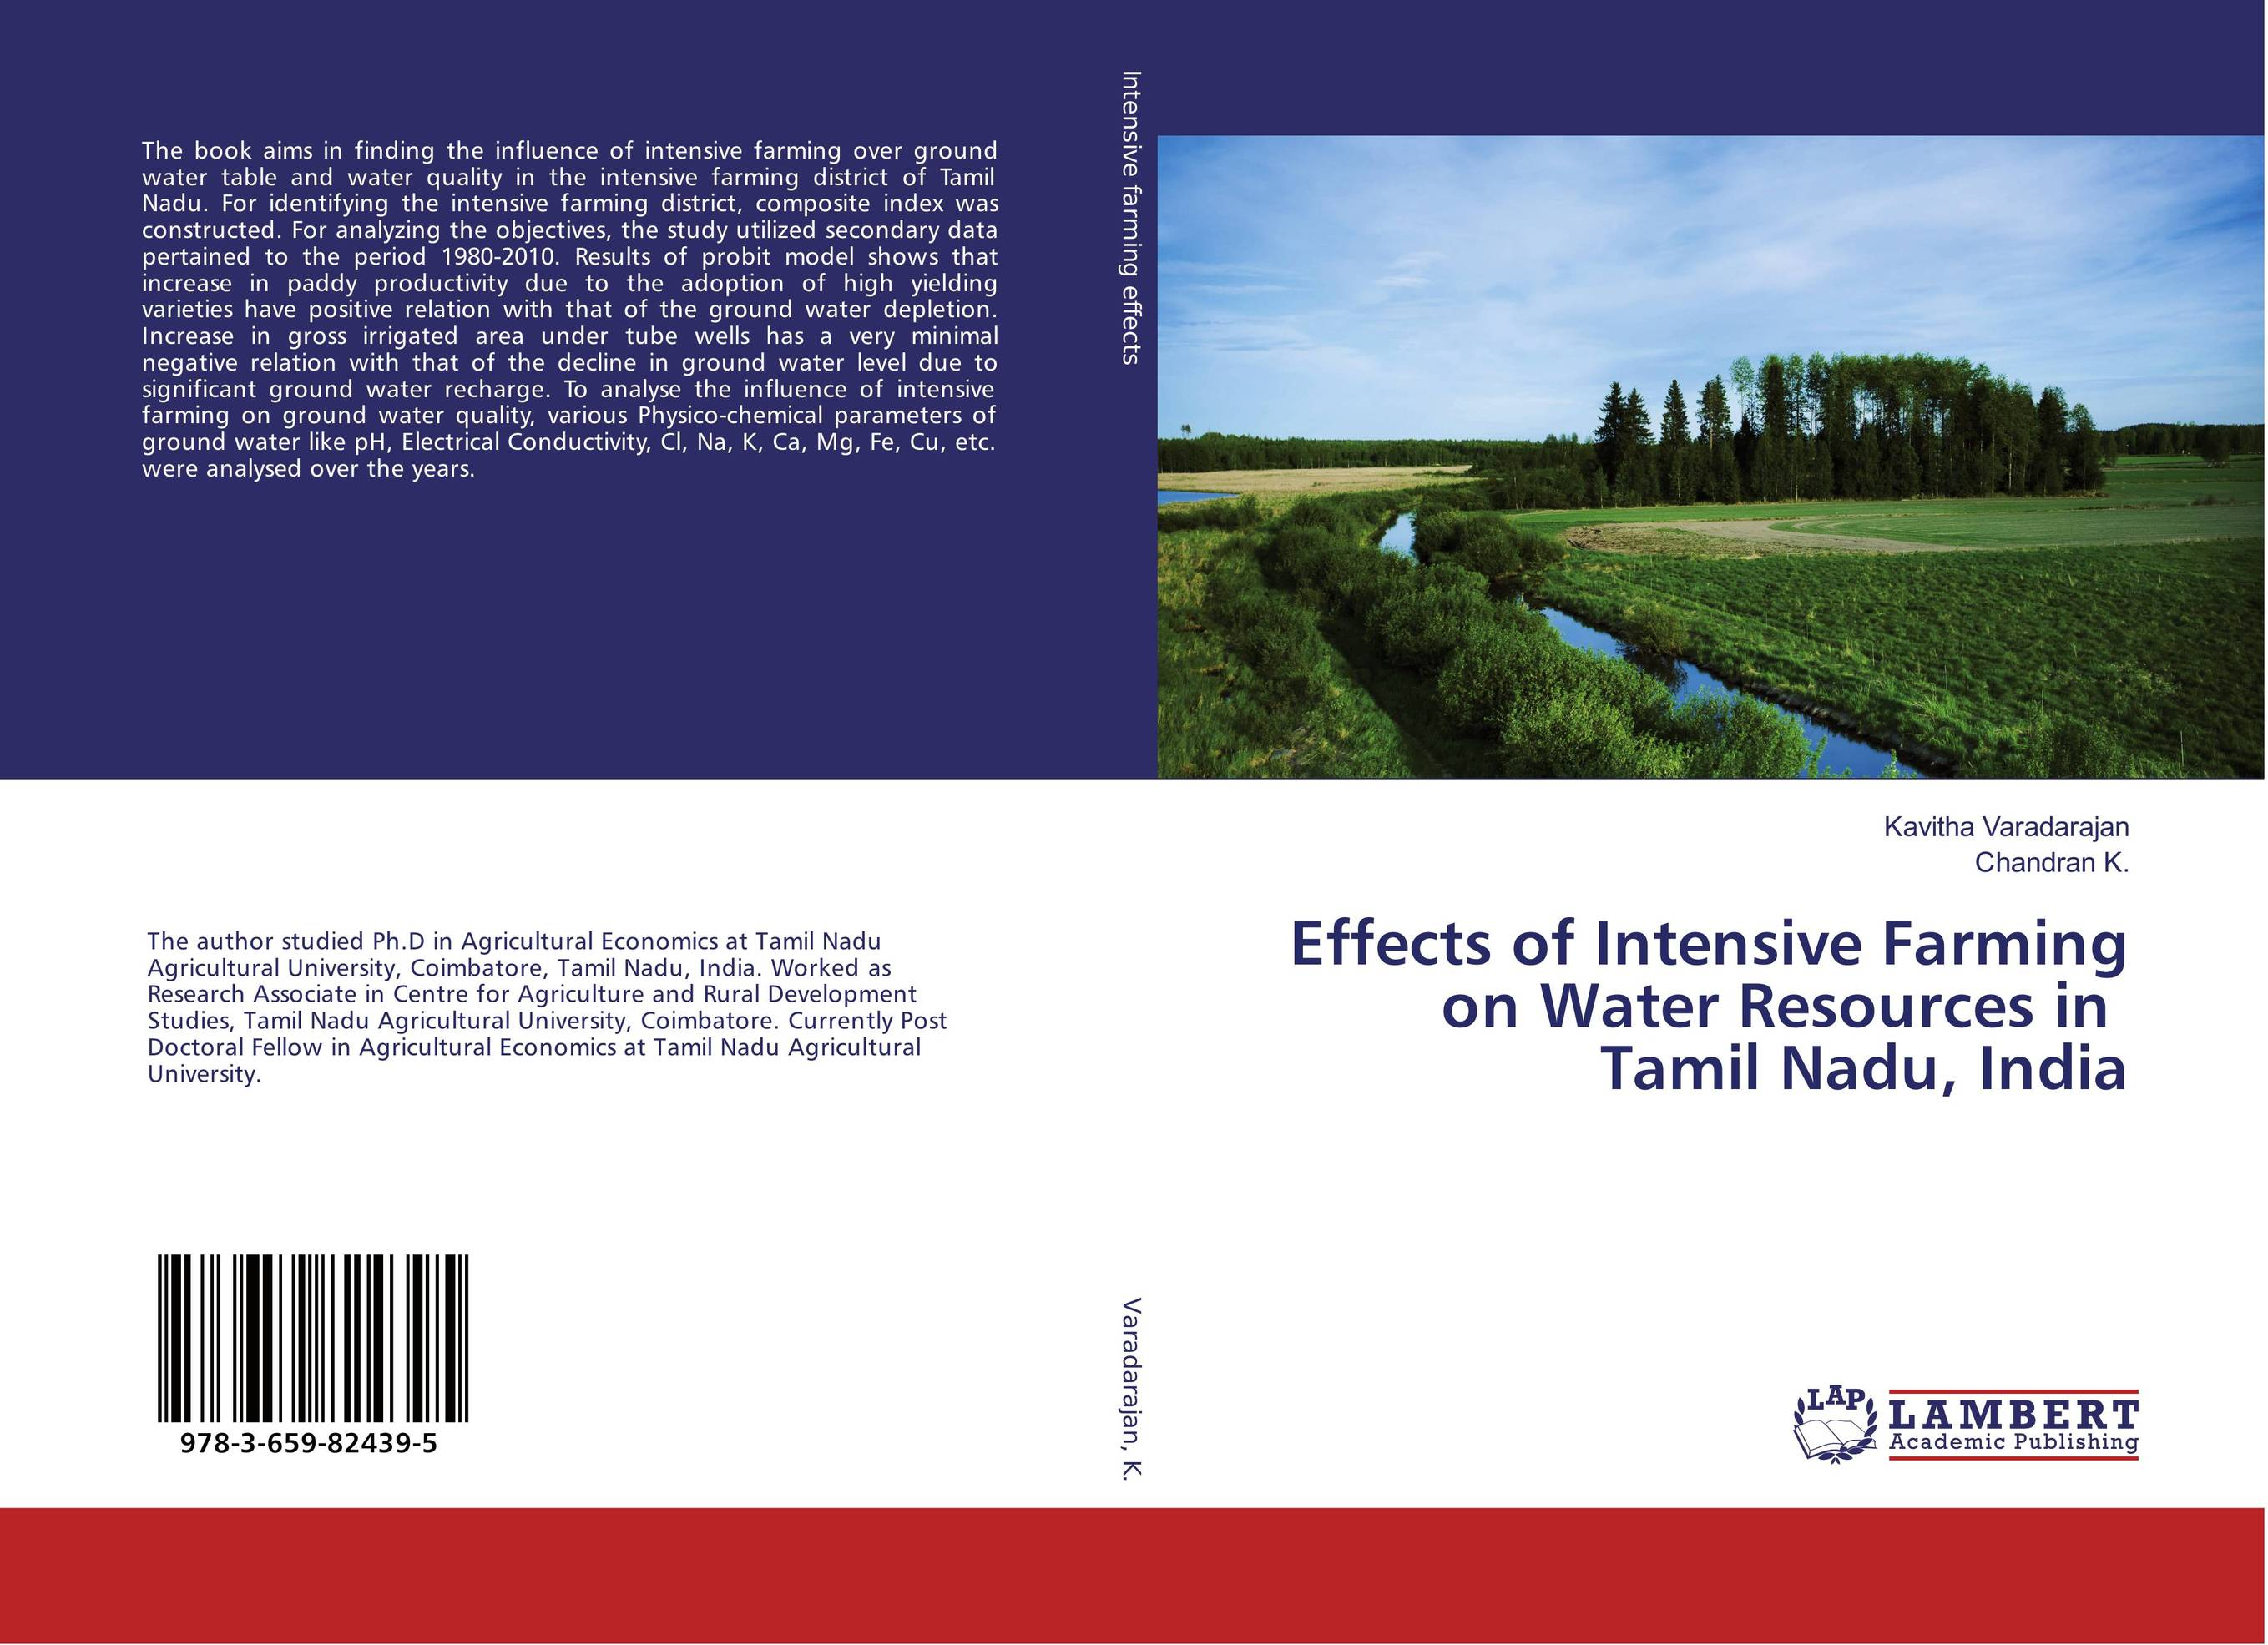 купить Effects of Intensive Farming on Water Resources in Tamil Nadu, India недорого